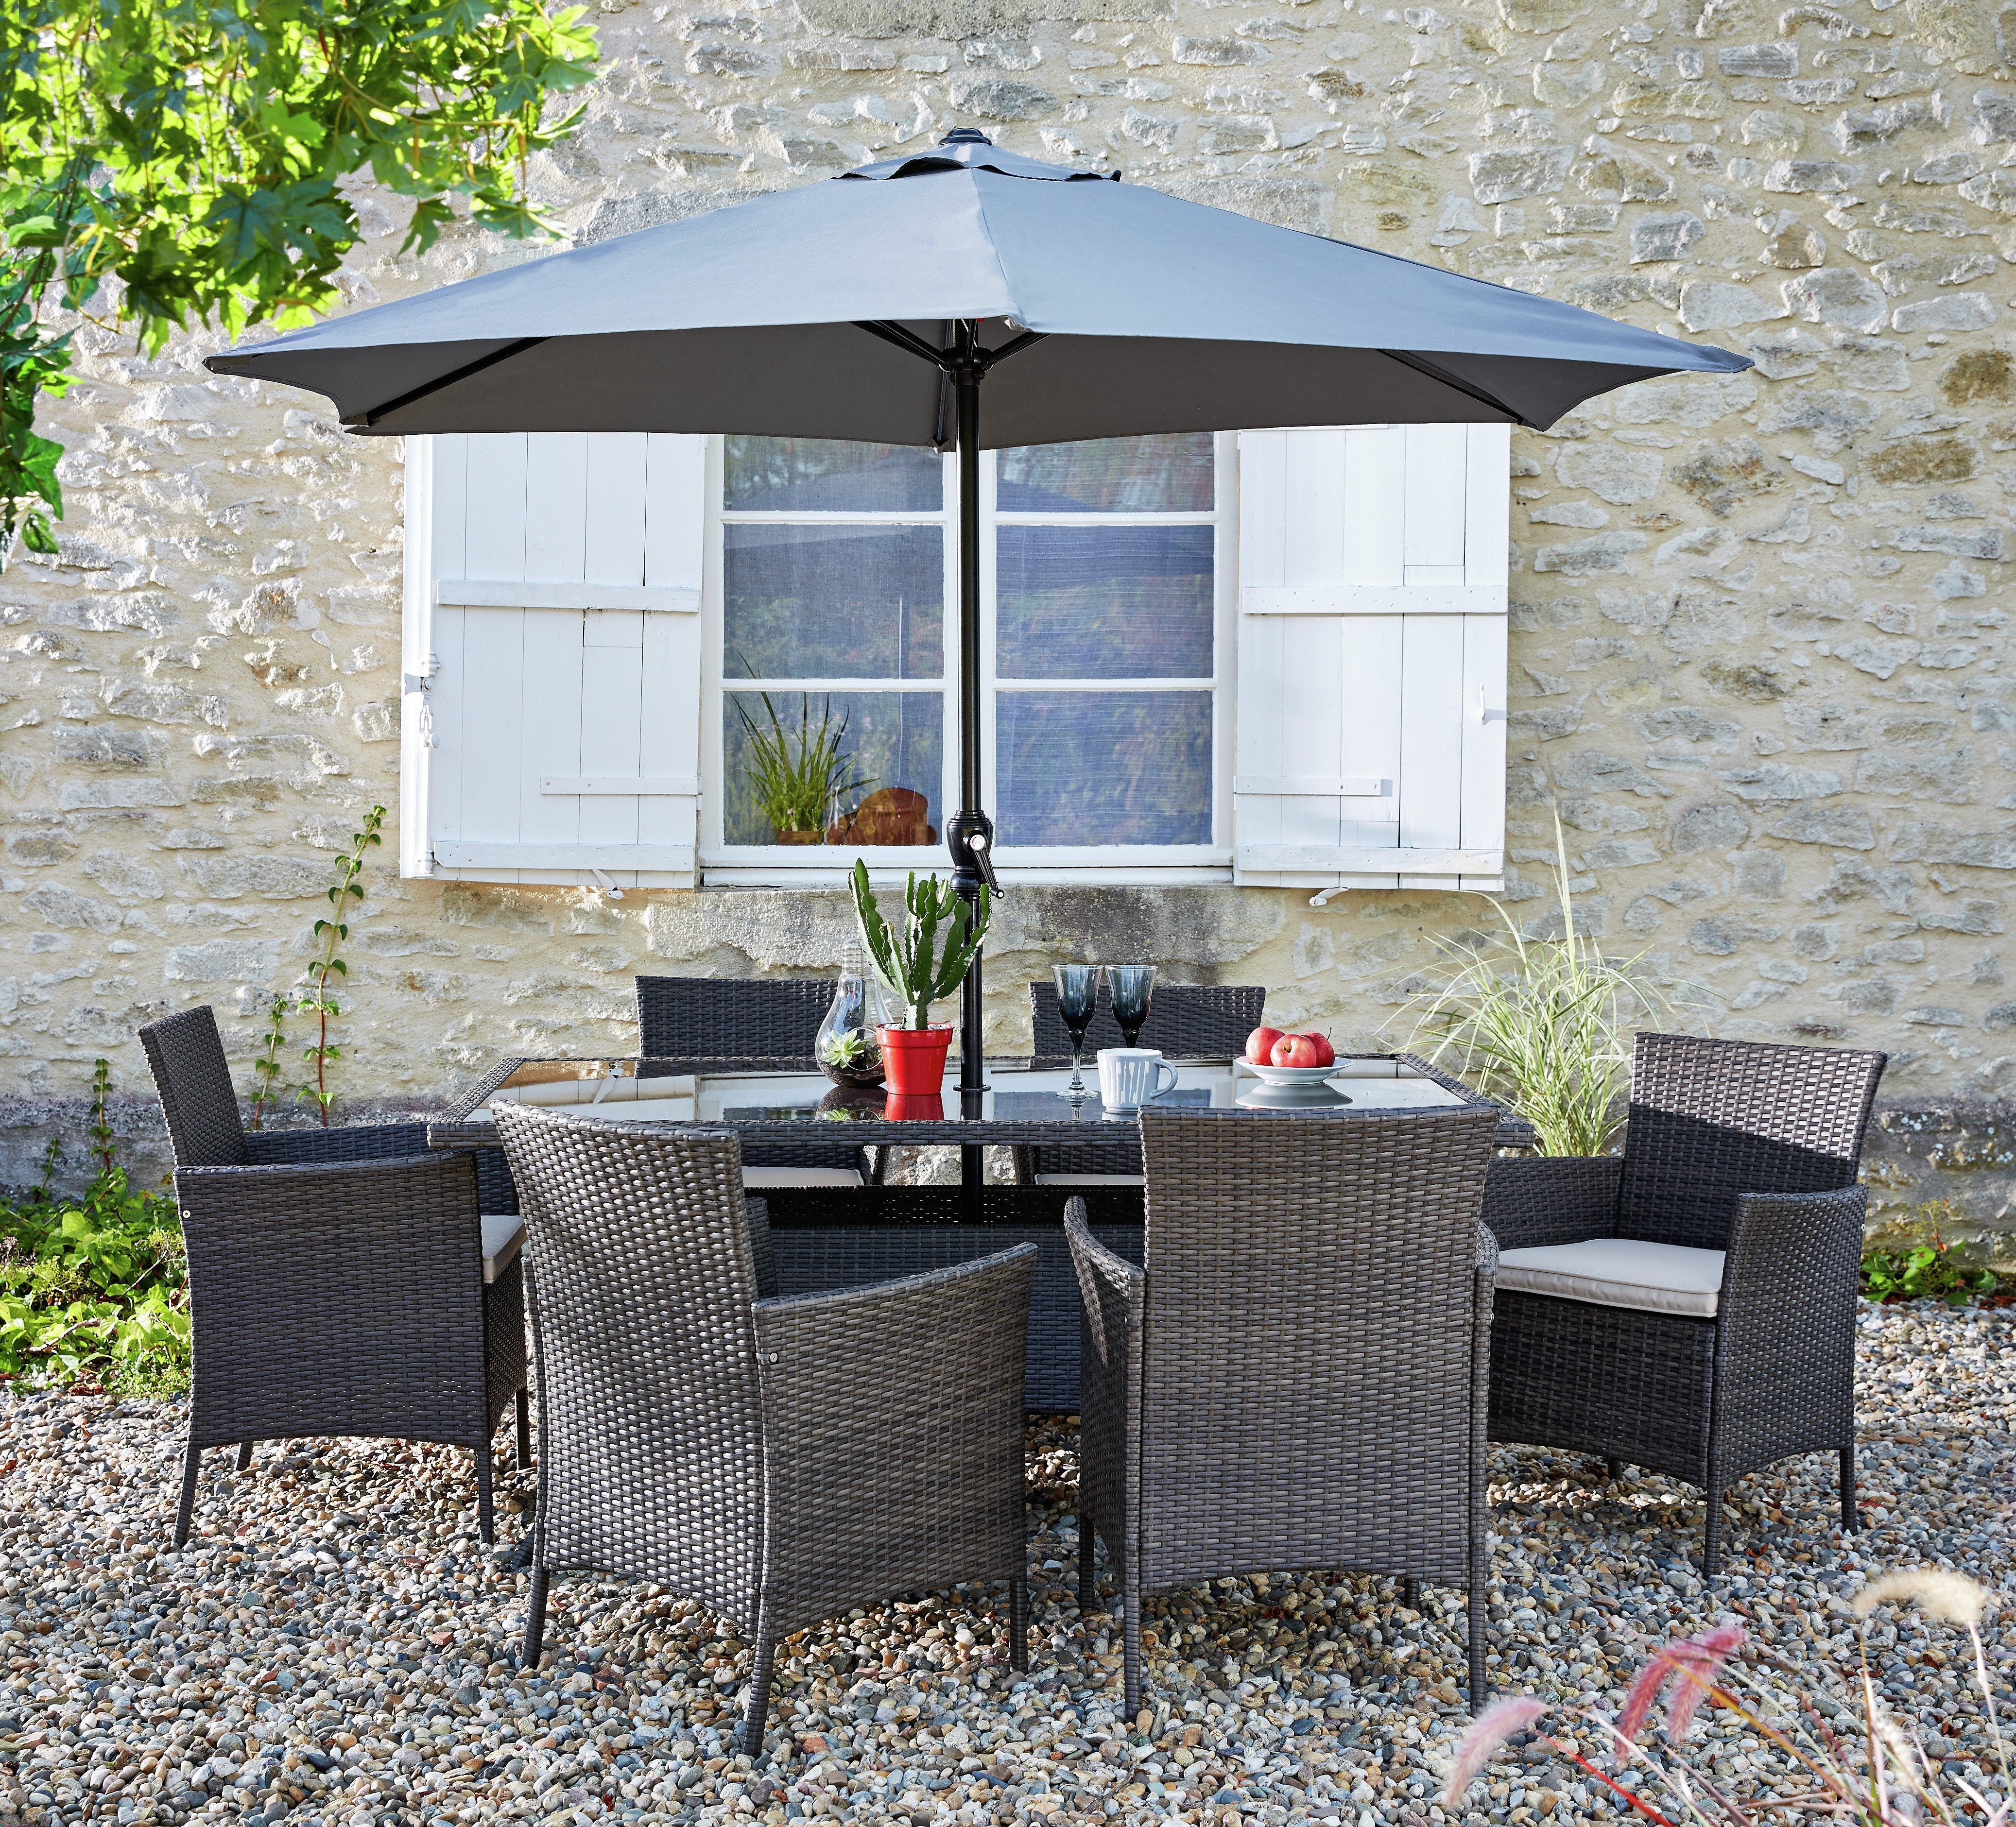 Buy Collection Fiji 6 Seater Rattan Patio Set   Grey At Argos.co.uk   Your  Online Shop For Garden Table And Chair Sets, Garden Furniture, Home And  Garden.